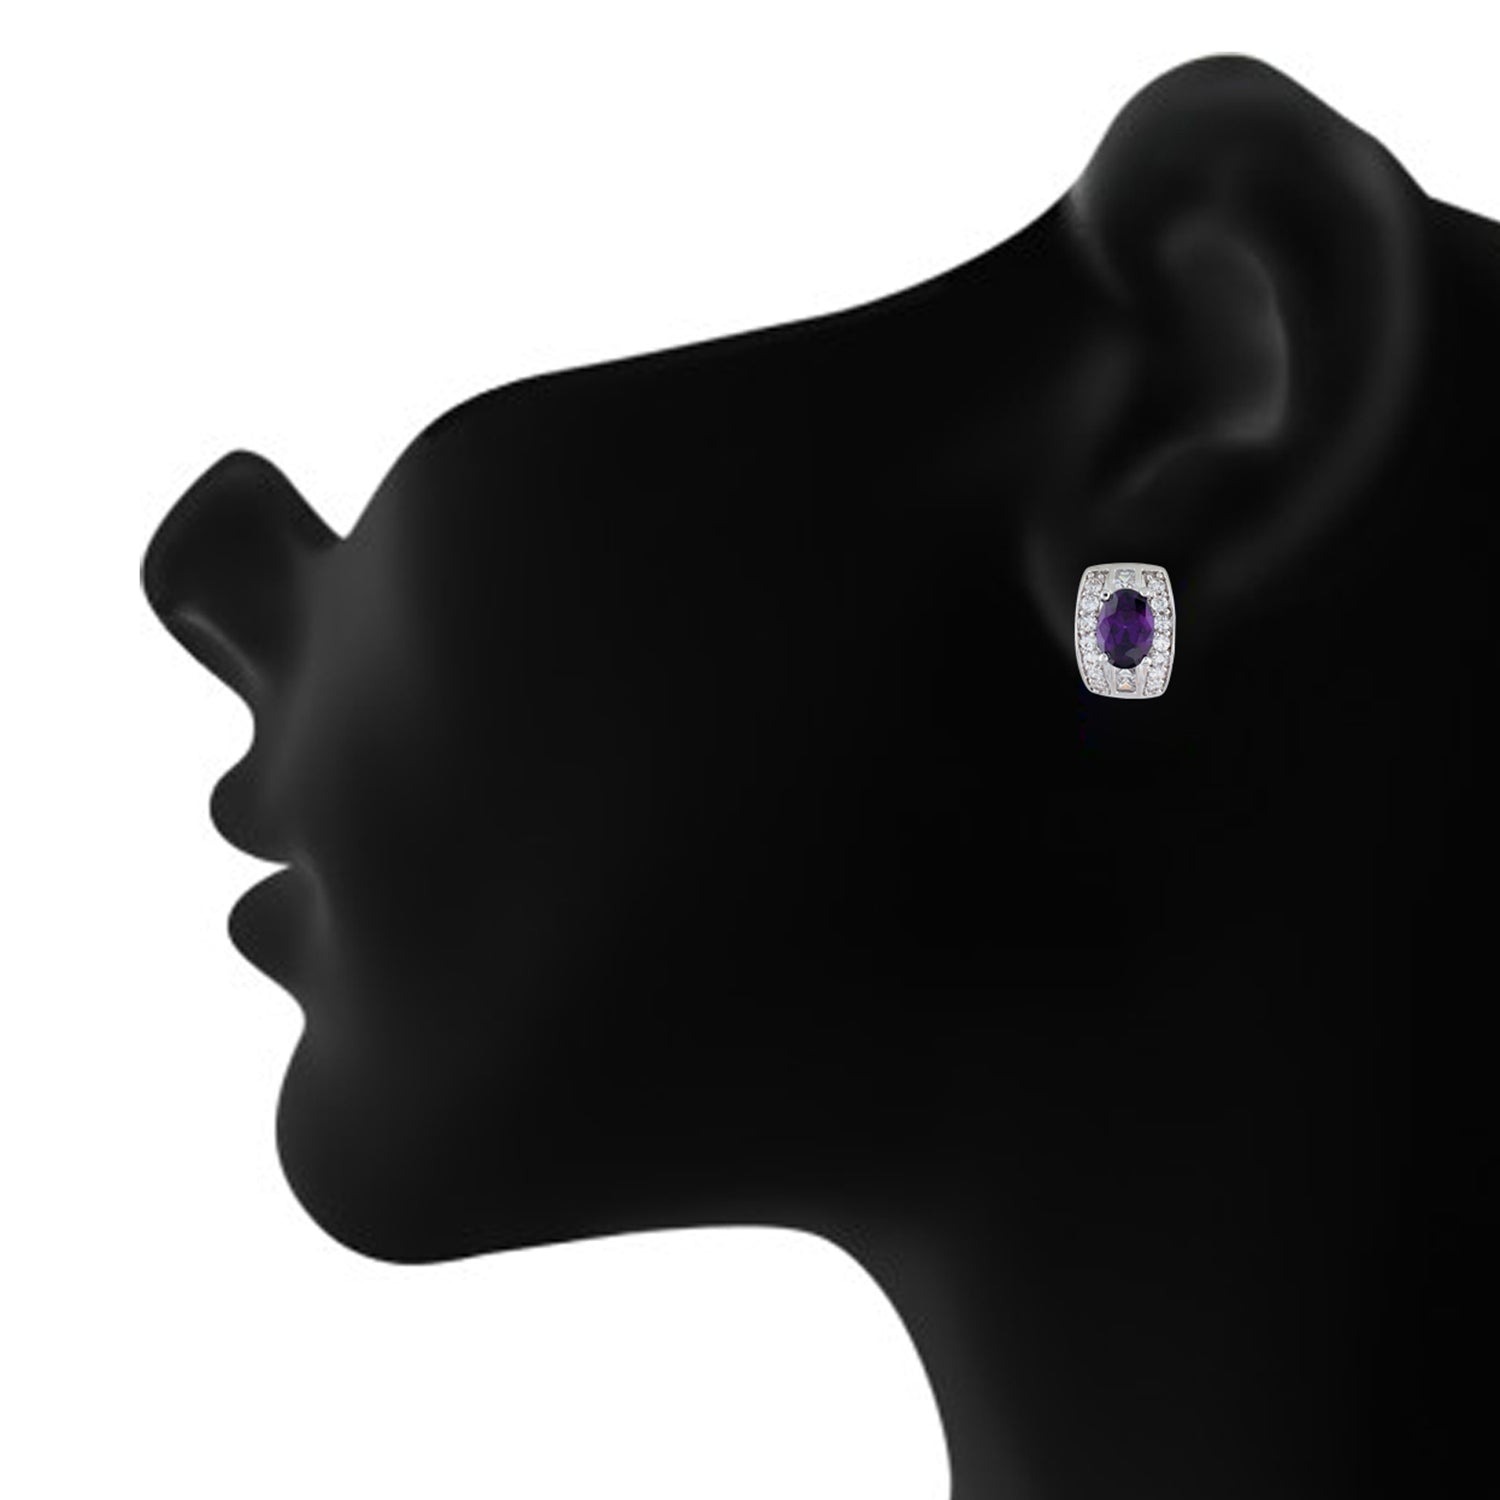 Breathtaking Purple and Silver Colour Small Ear Bali's for Girls and Women